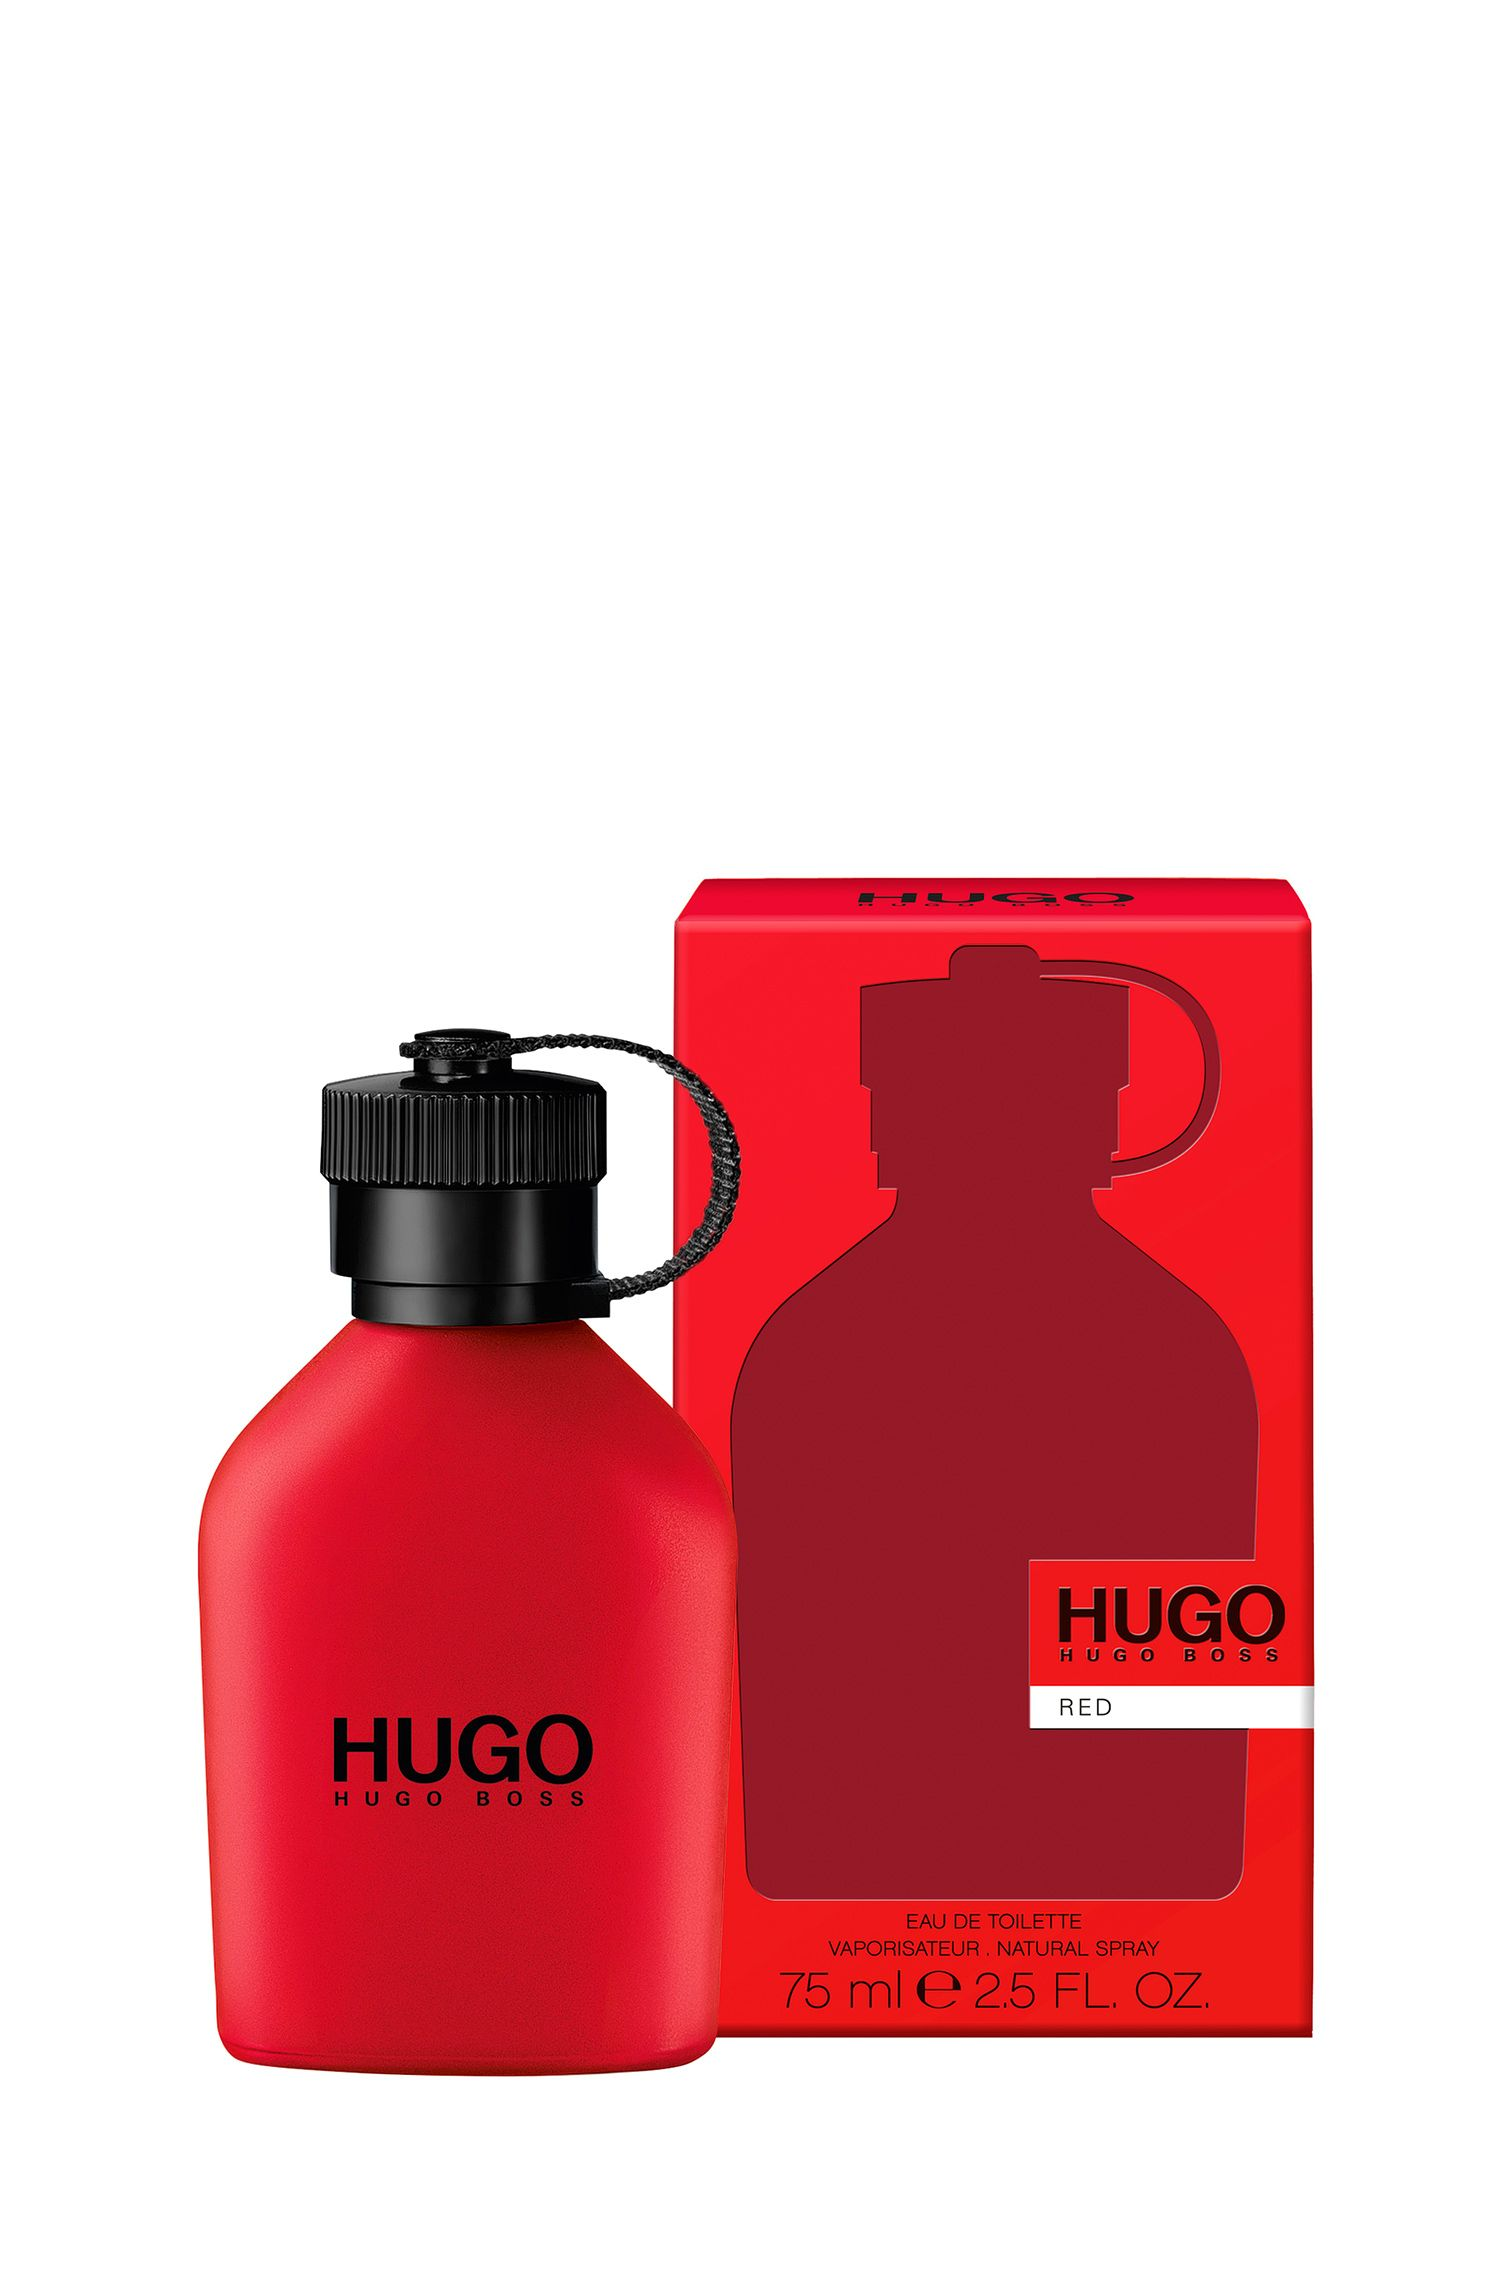 'HUGO Red' Eau de Toilette 75 ml